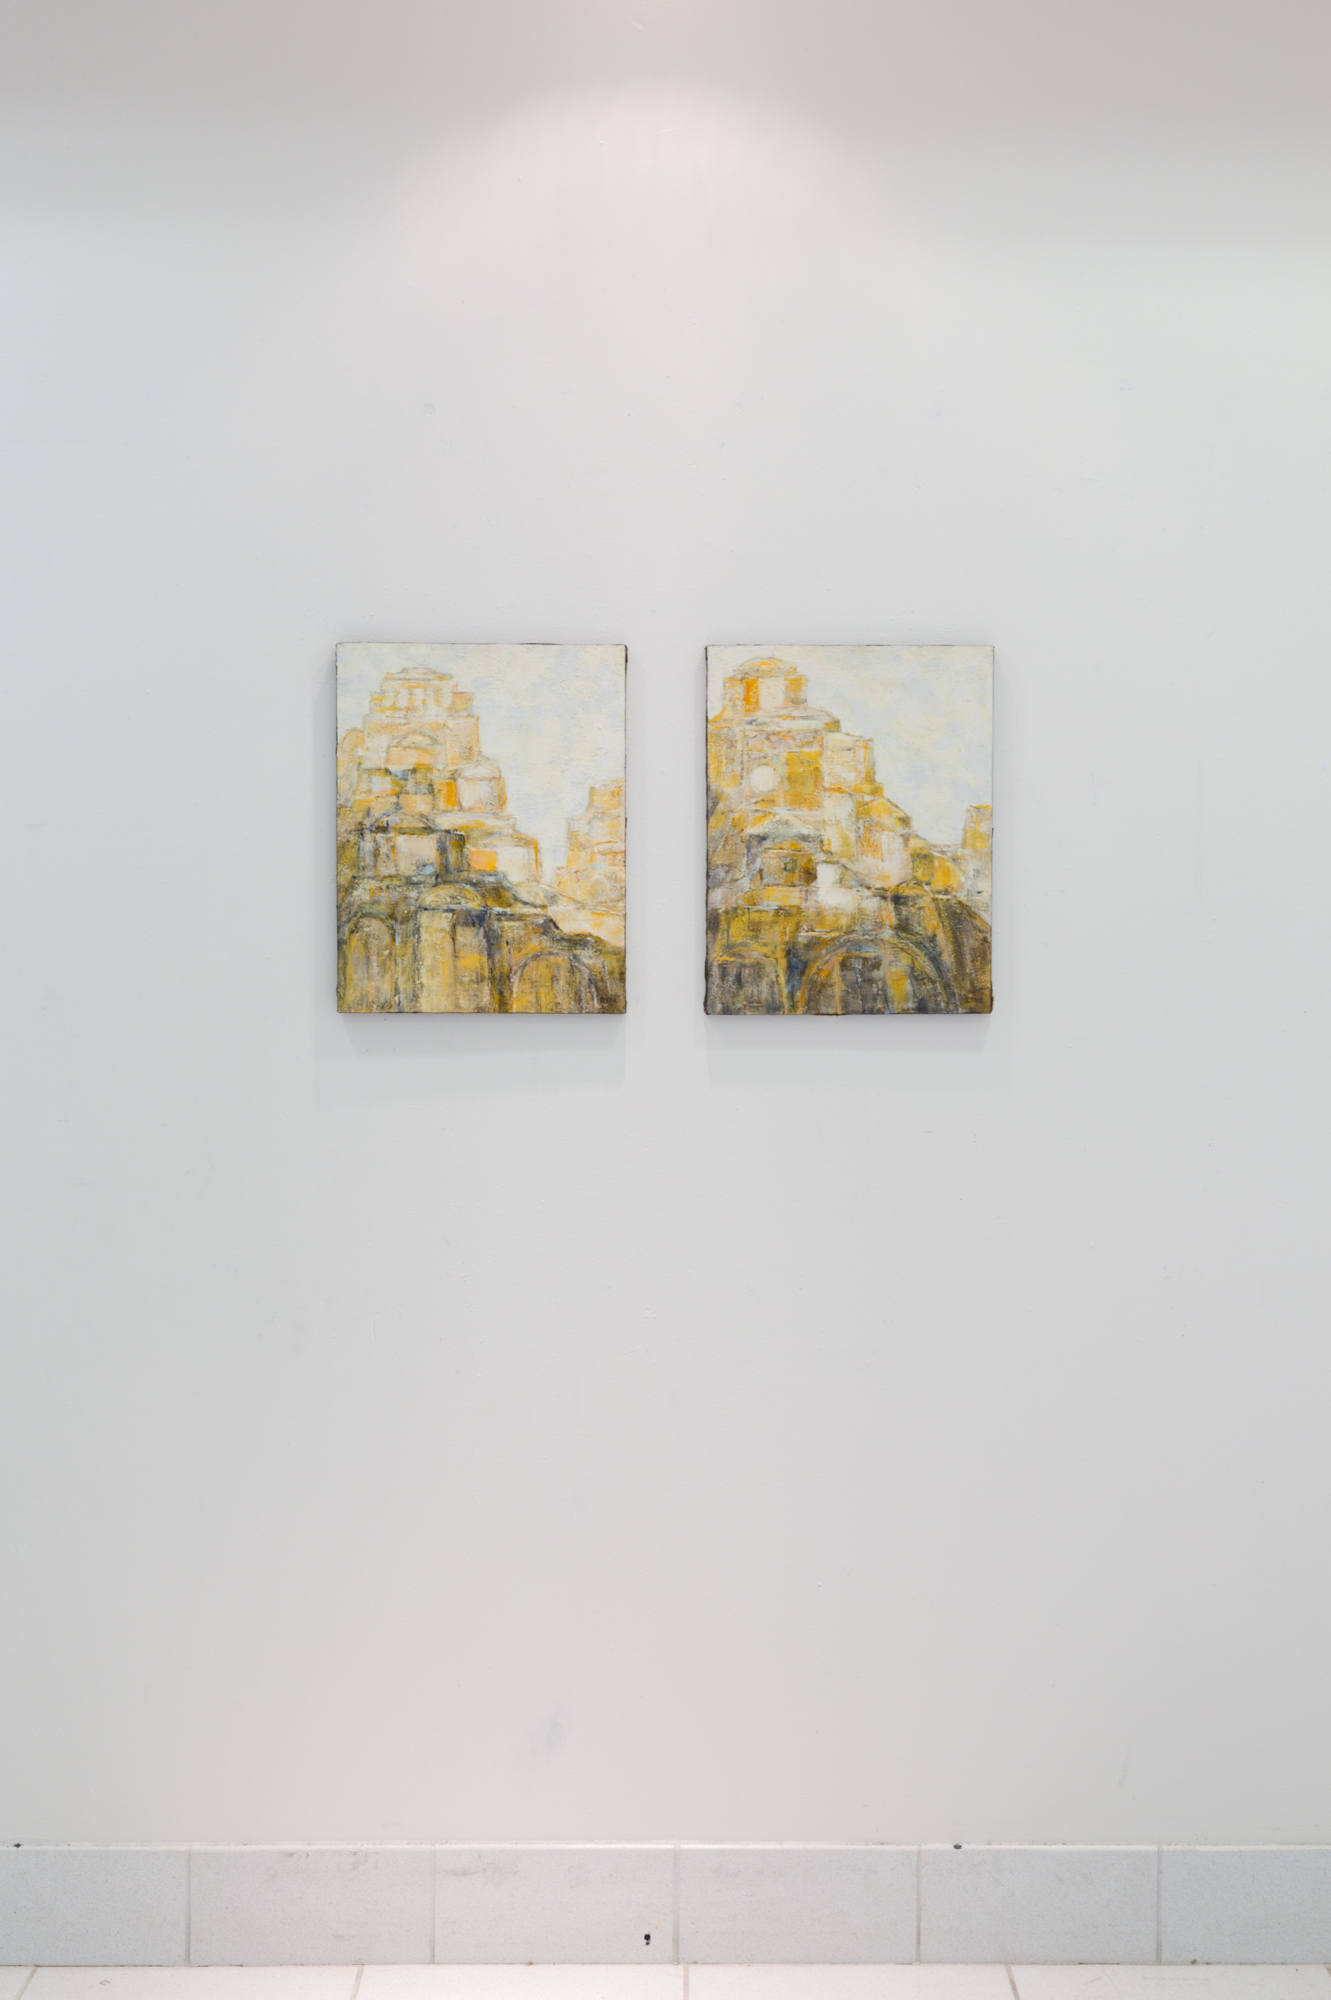 Fred Terna, Light and Gates Waiting , 1978, Acrylic on canvas, 18 x 14 inches (left);  Stones Aloft , 1978, Acrylic on canvas, 18 x 14 inches (right)